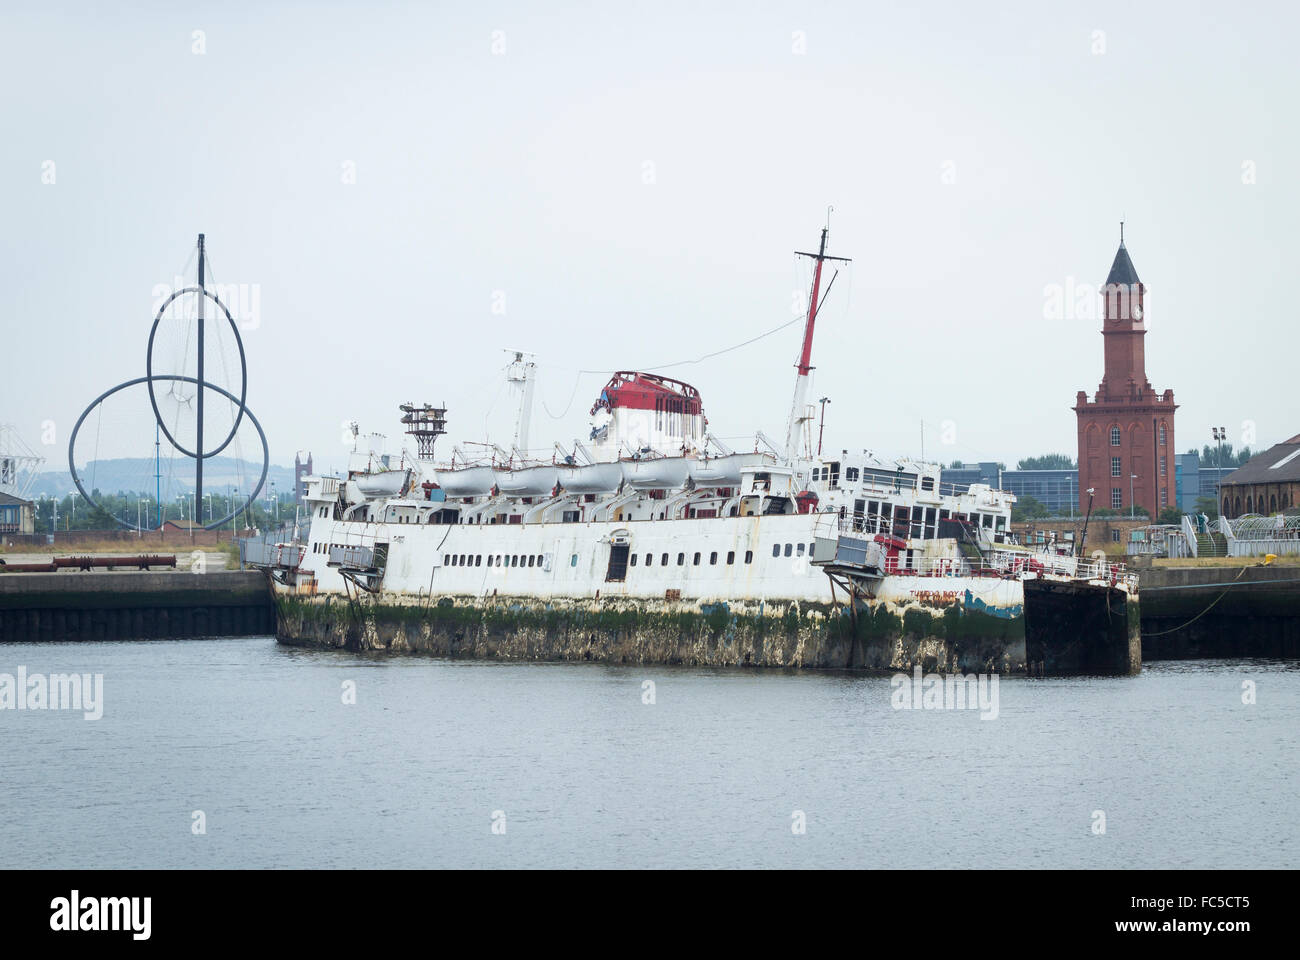 The Tuxedo Royale, former floating nightclub, moored  on river Tees in Middlesbrough. UK - Stock Image